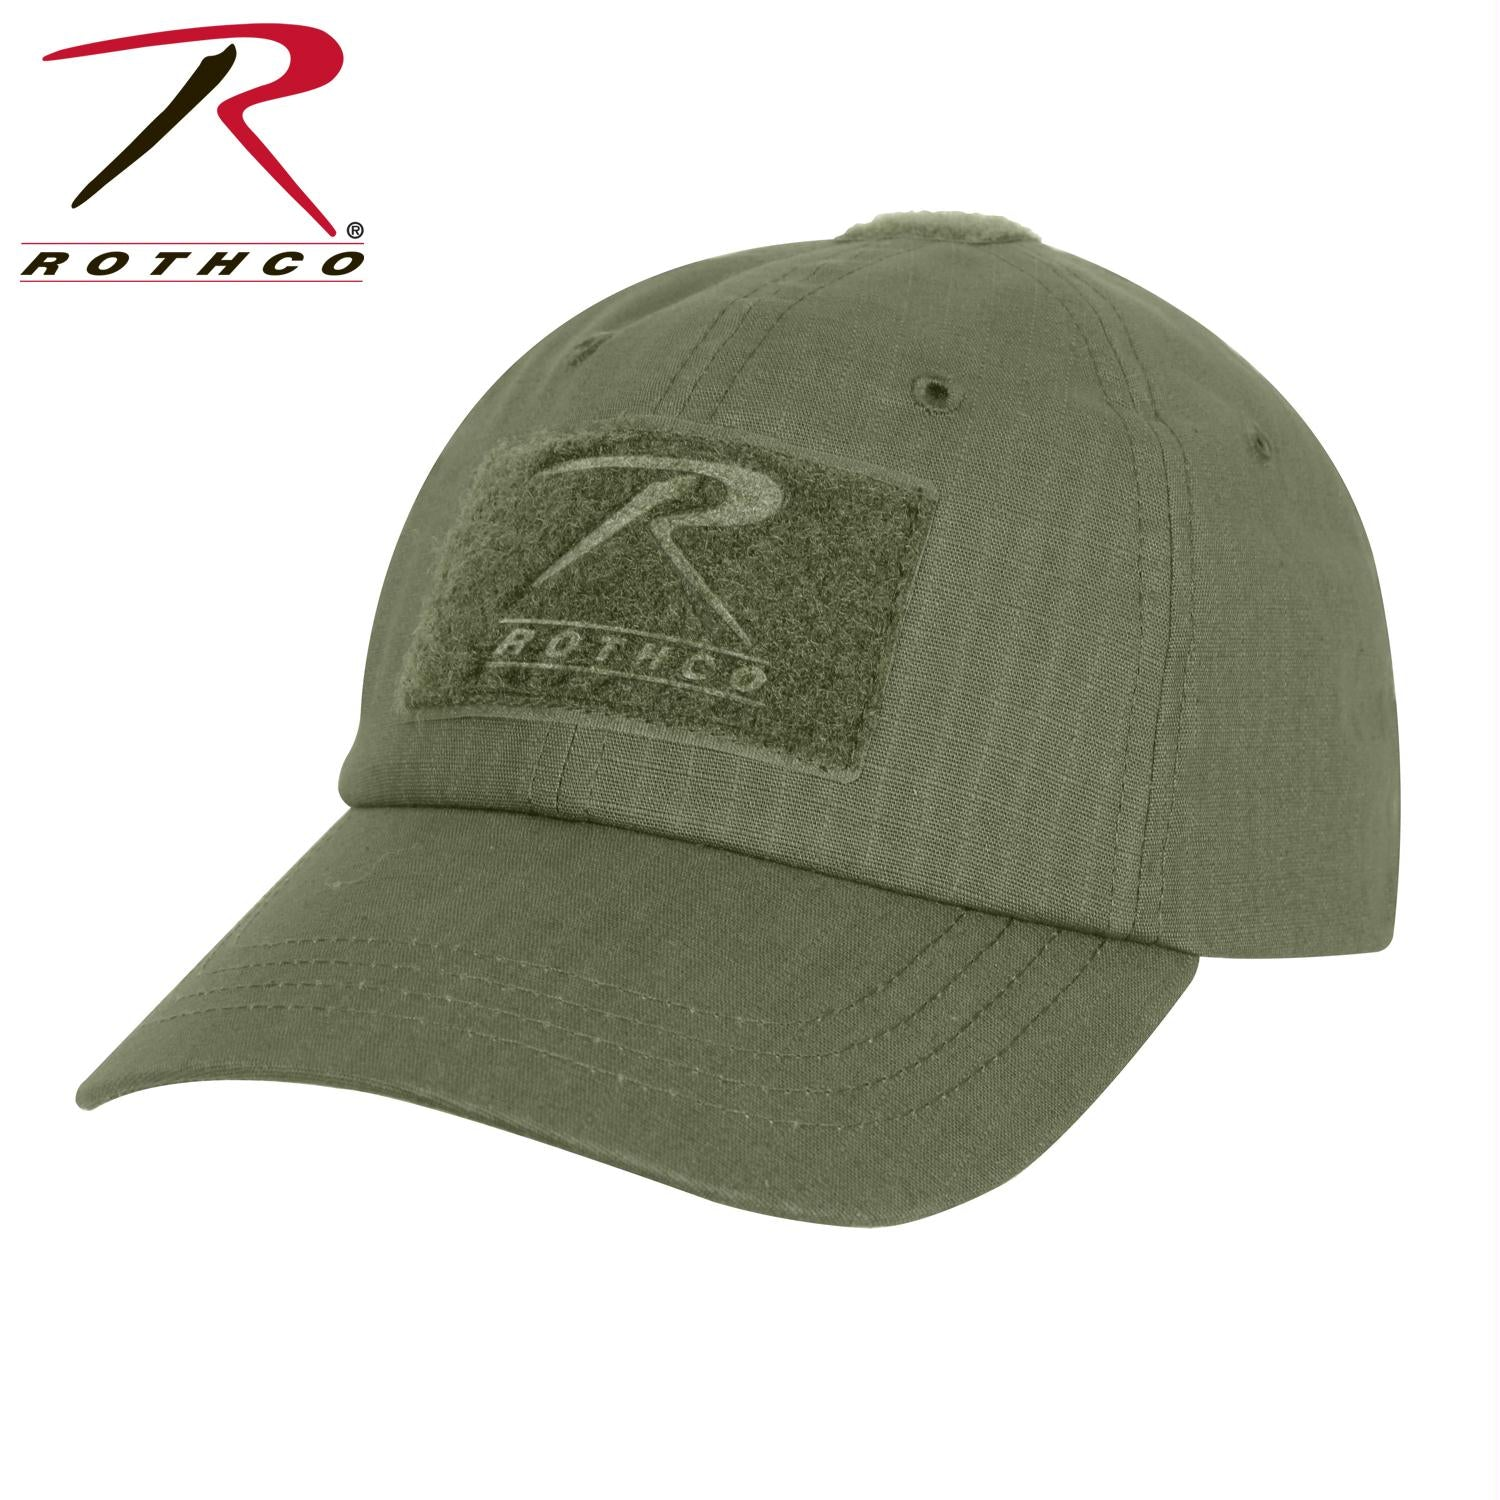 Rothco Rip Stop Operator Tactical Cap - Olive Drab / One Size